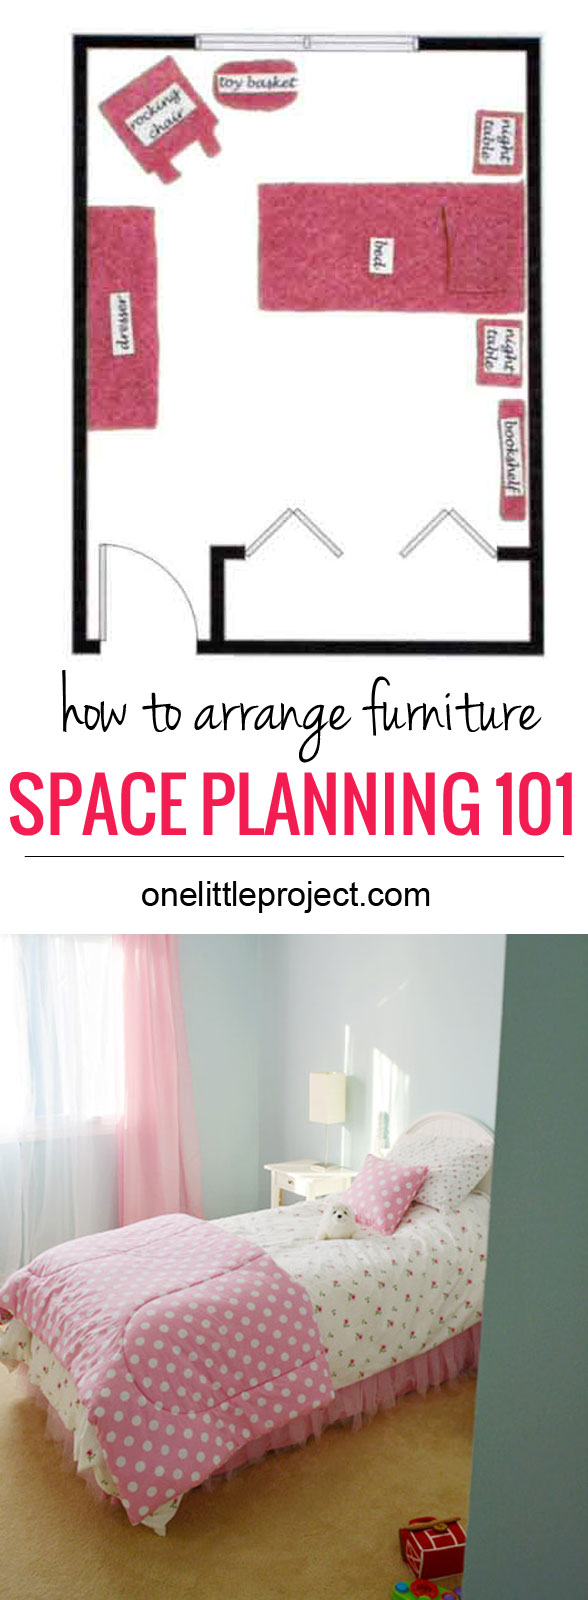 How to arrange furniture in a toddler's bedroom.  Tips and tricks to get the best layout for the space.